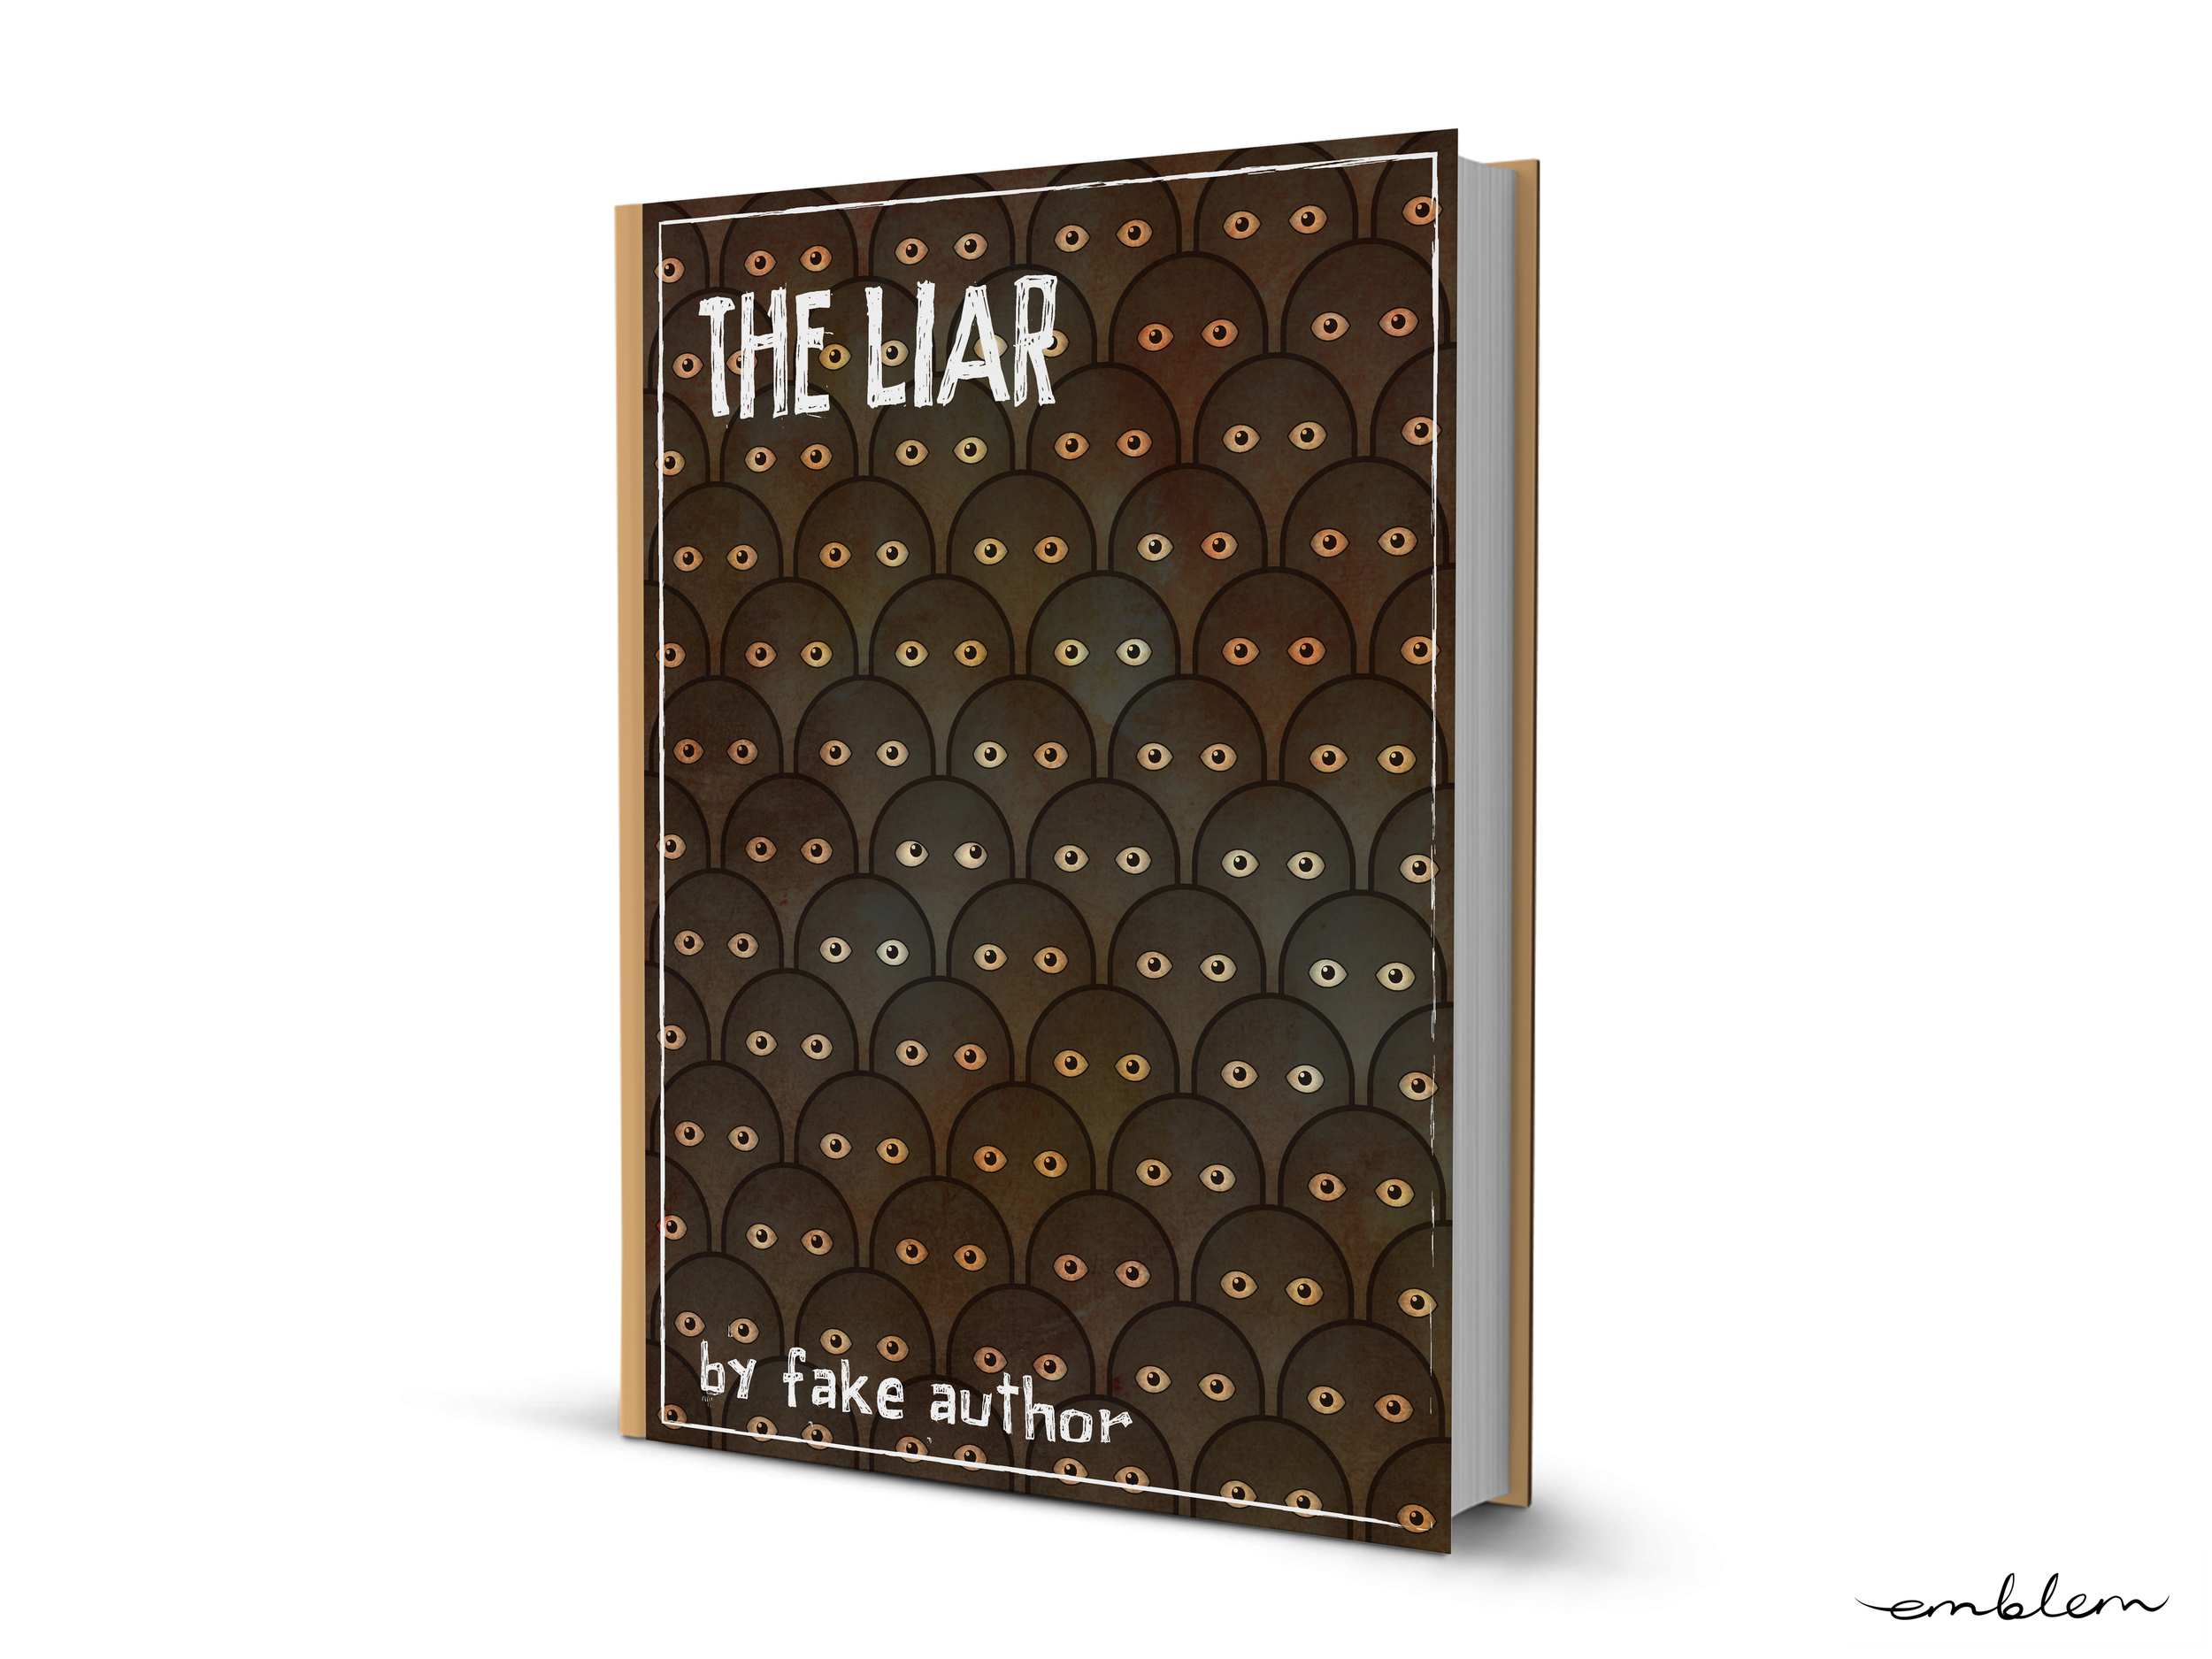 The_Liar_book.jpg